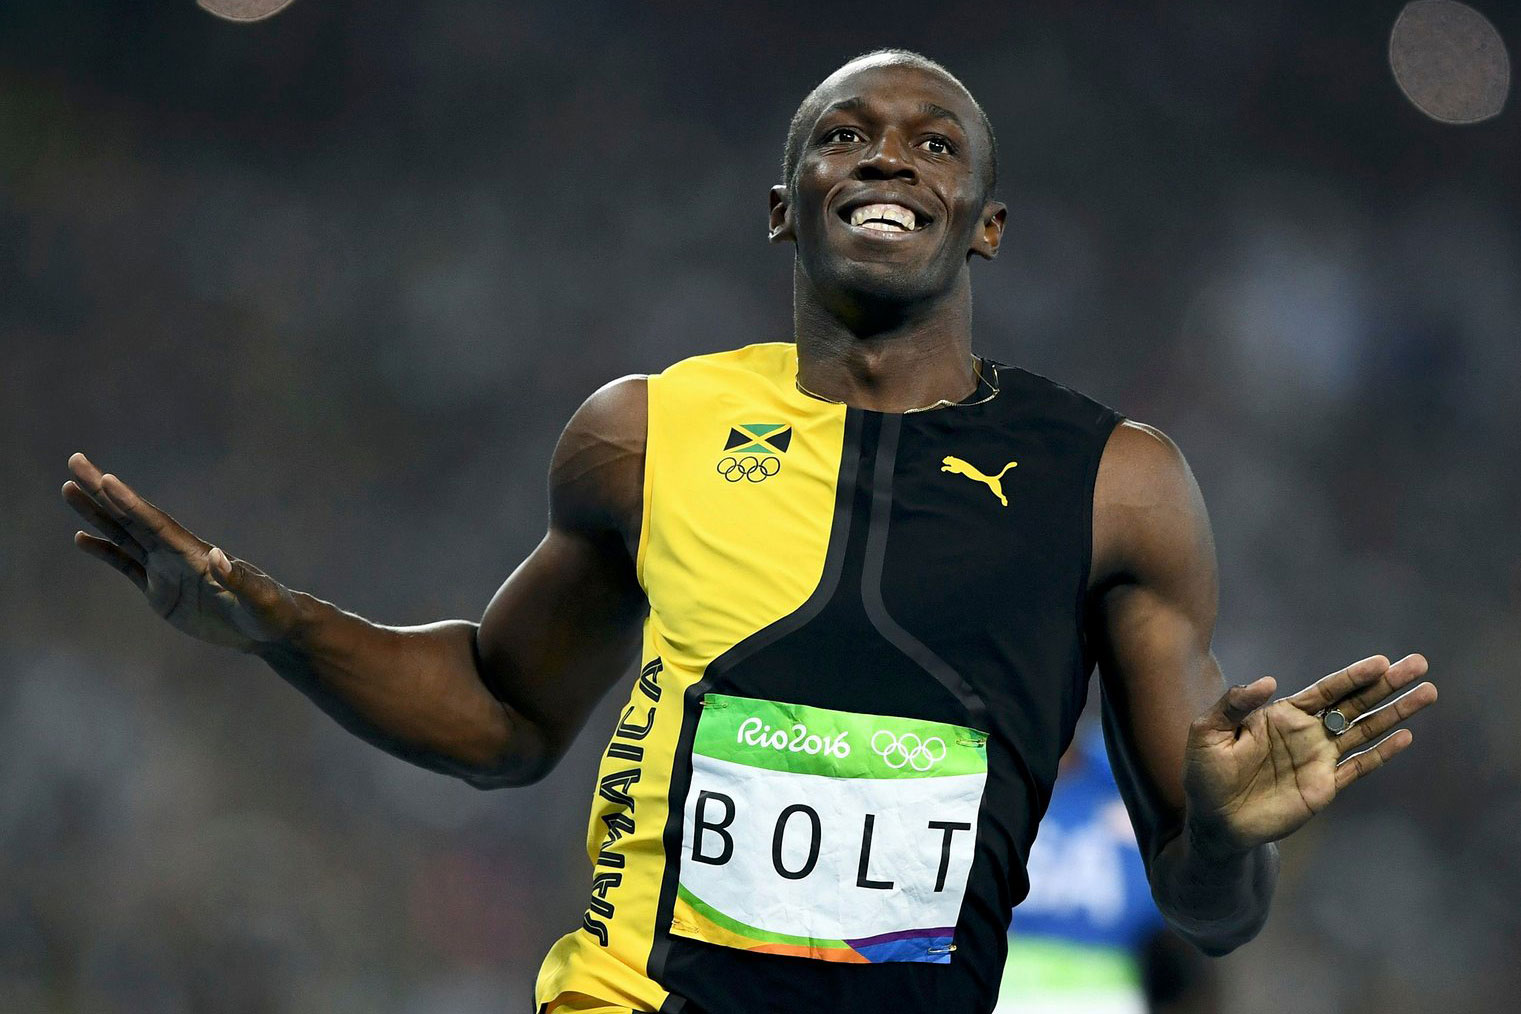 Usain Bolt Wins 100m Final At Rio Olympics | HYPEBEAST